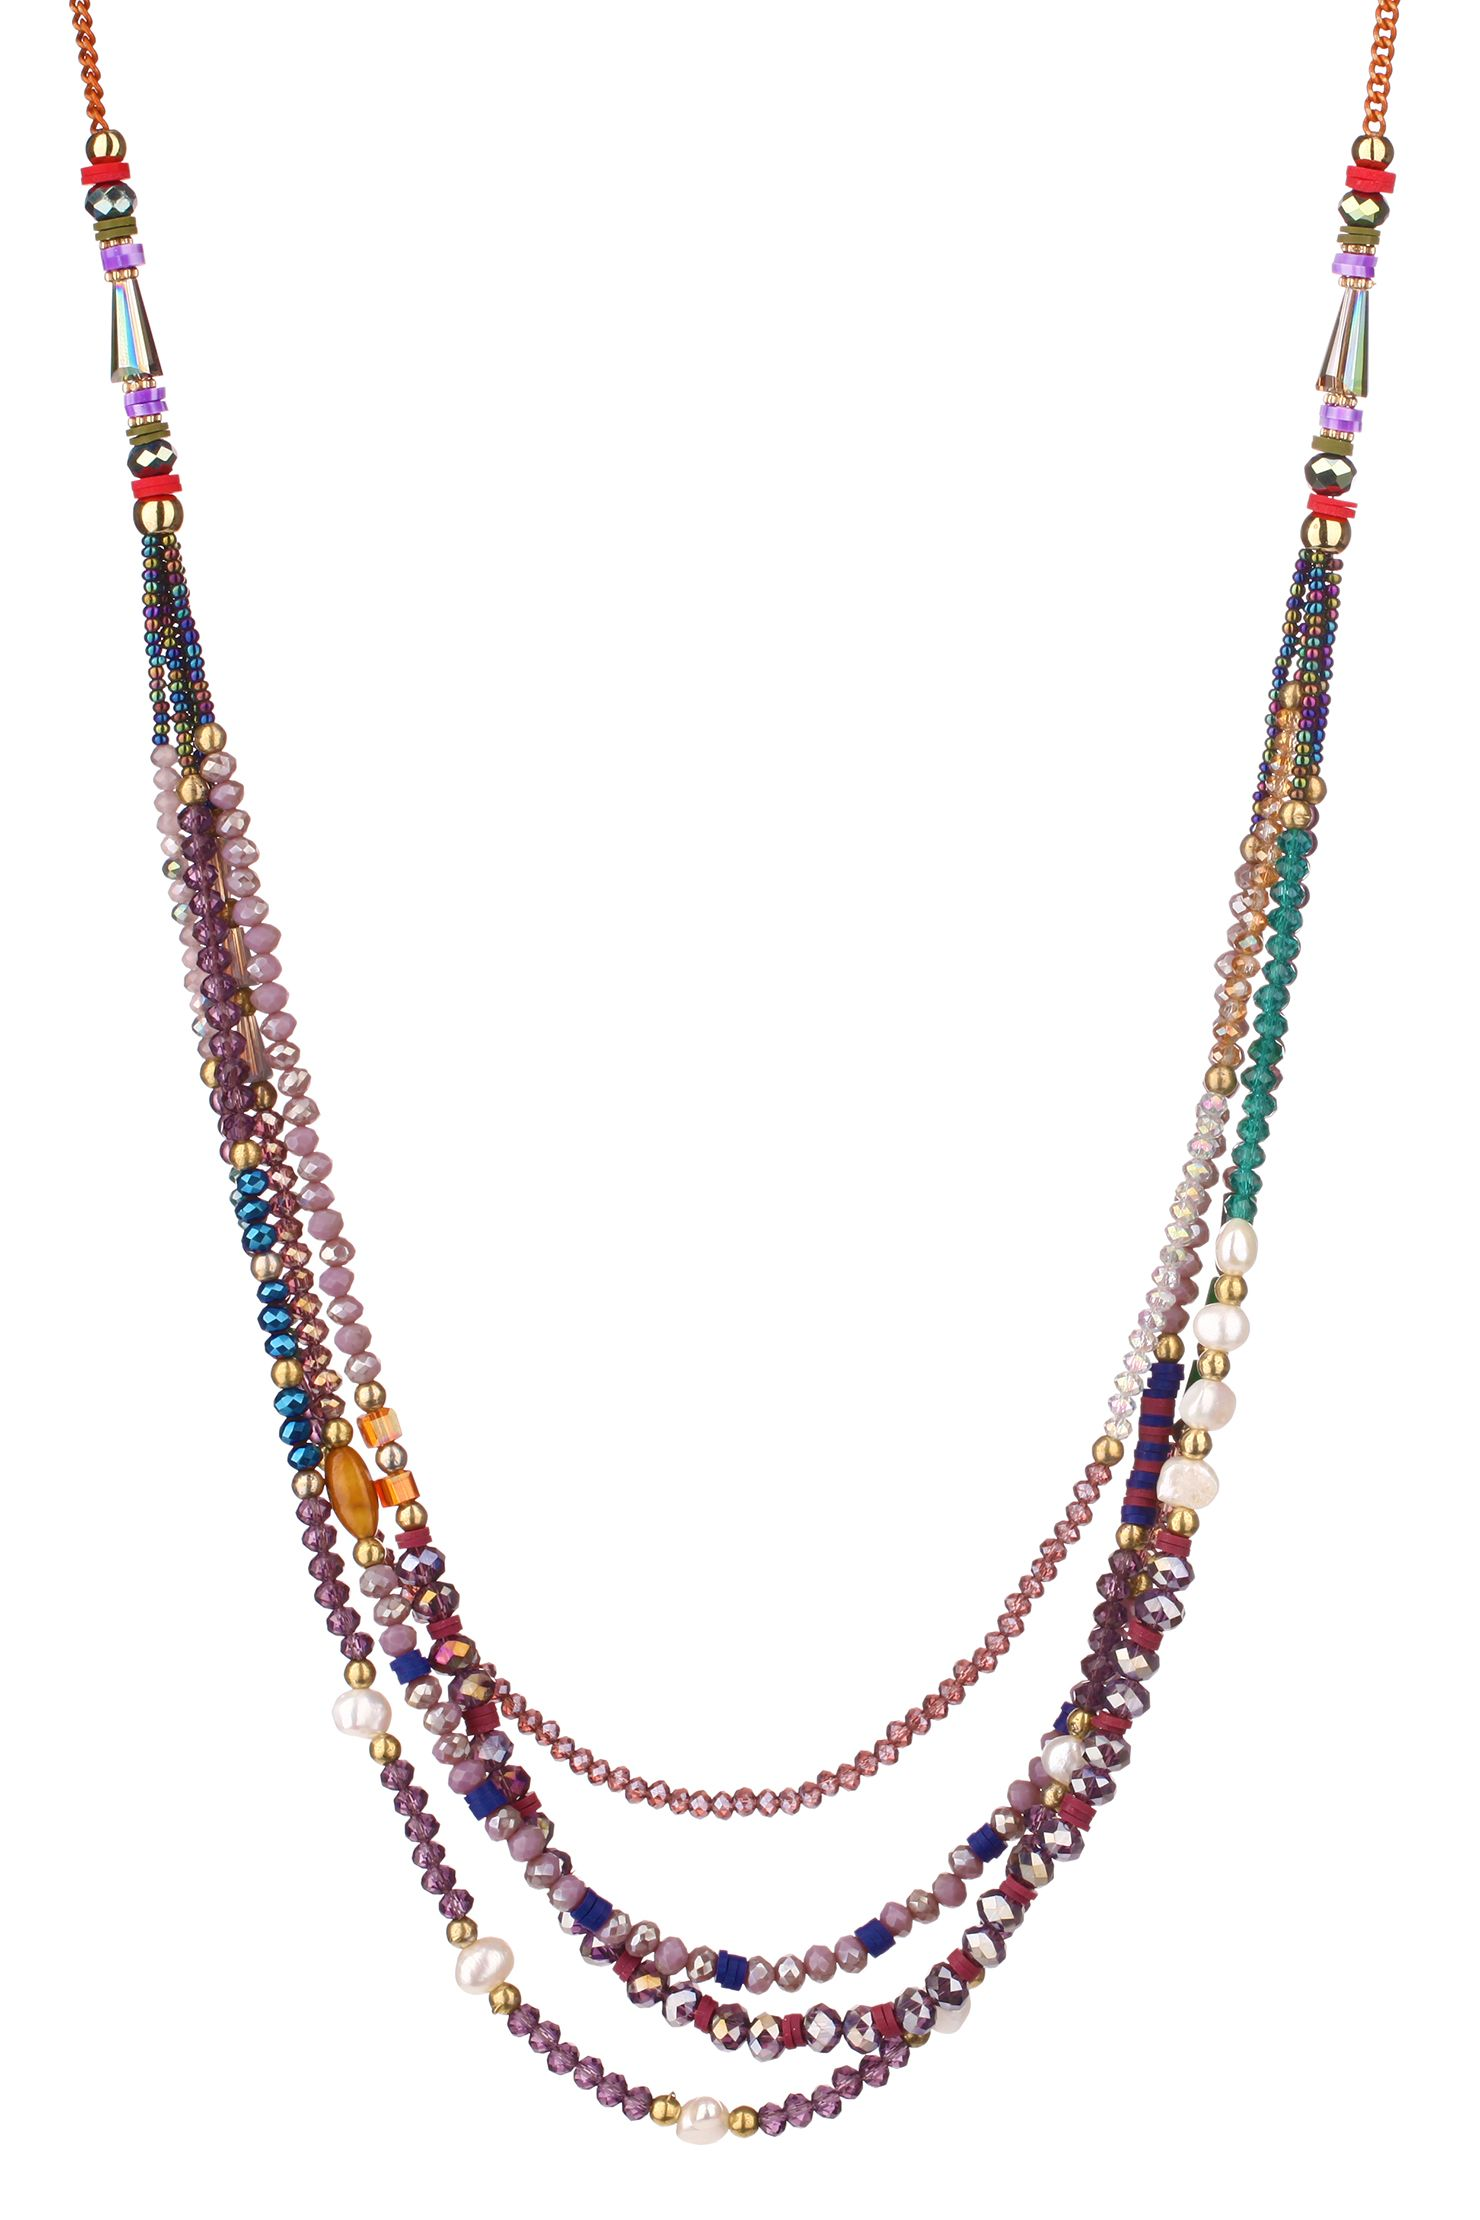 Sautoir perles Patricia Violet Clo&Se by MonShowroom en promotion sur MonShowroom.com